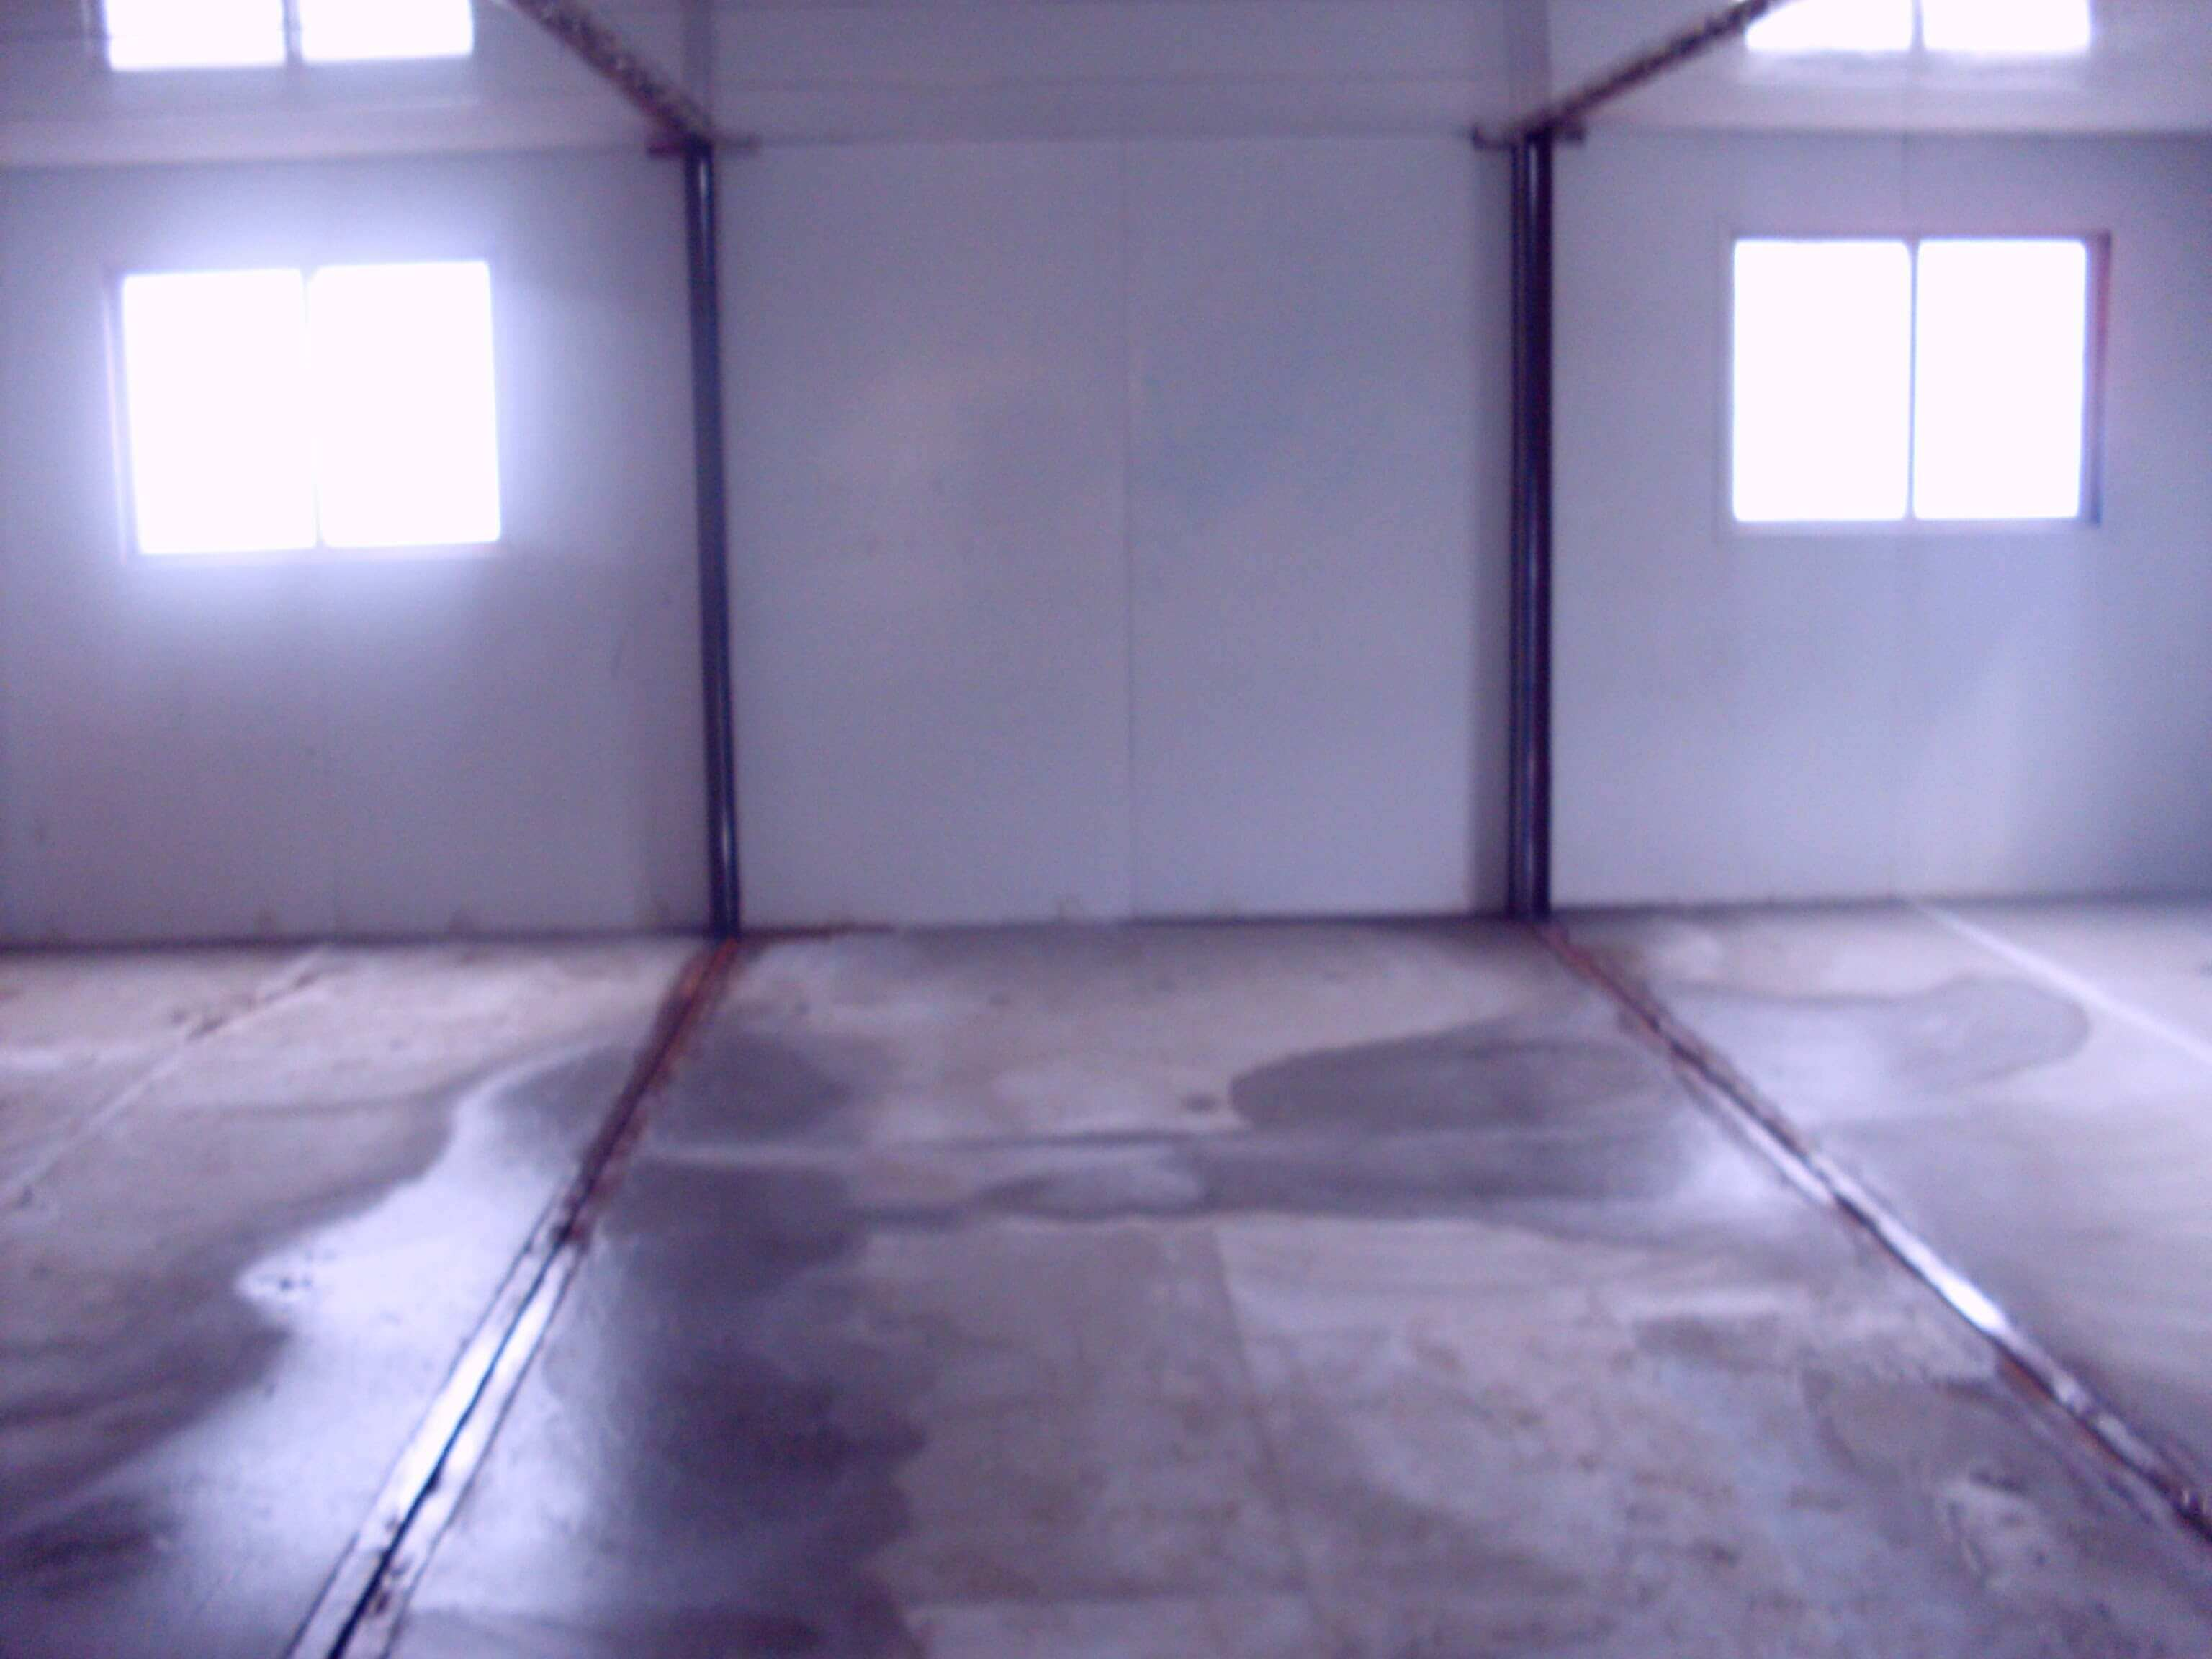 Office Shipping Container Internal View   Container Rental & Sales 020